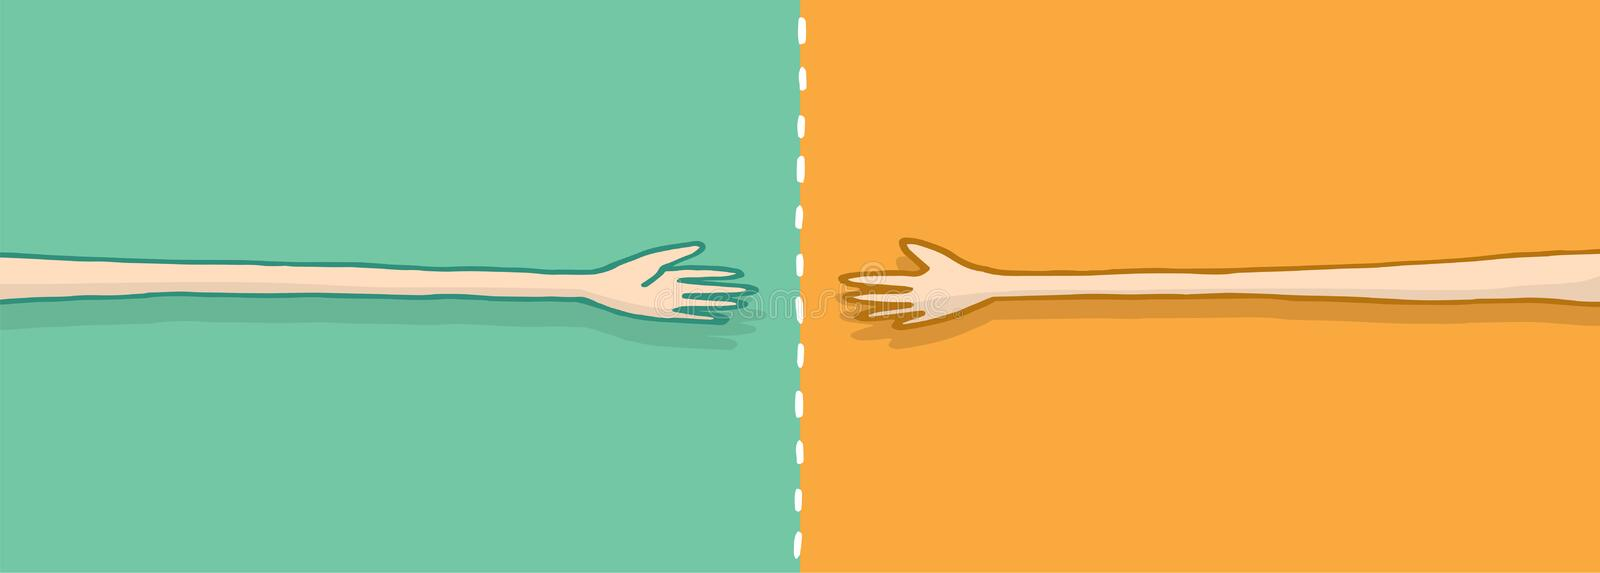 Long arms in negotiation on a handshake vector illustration